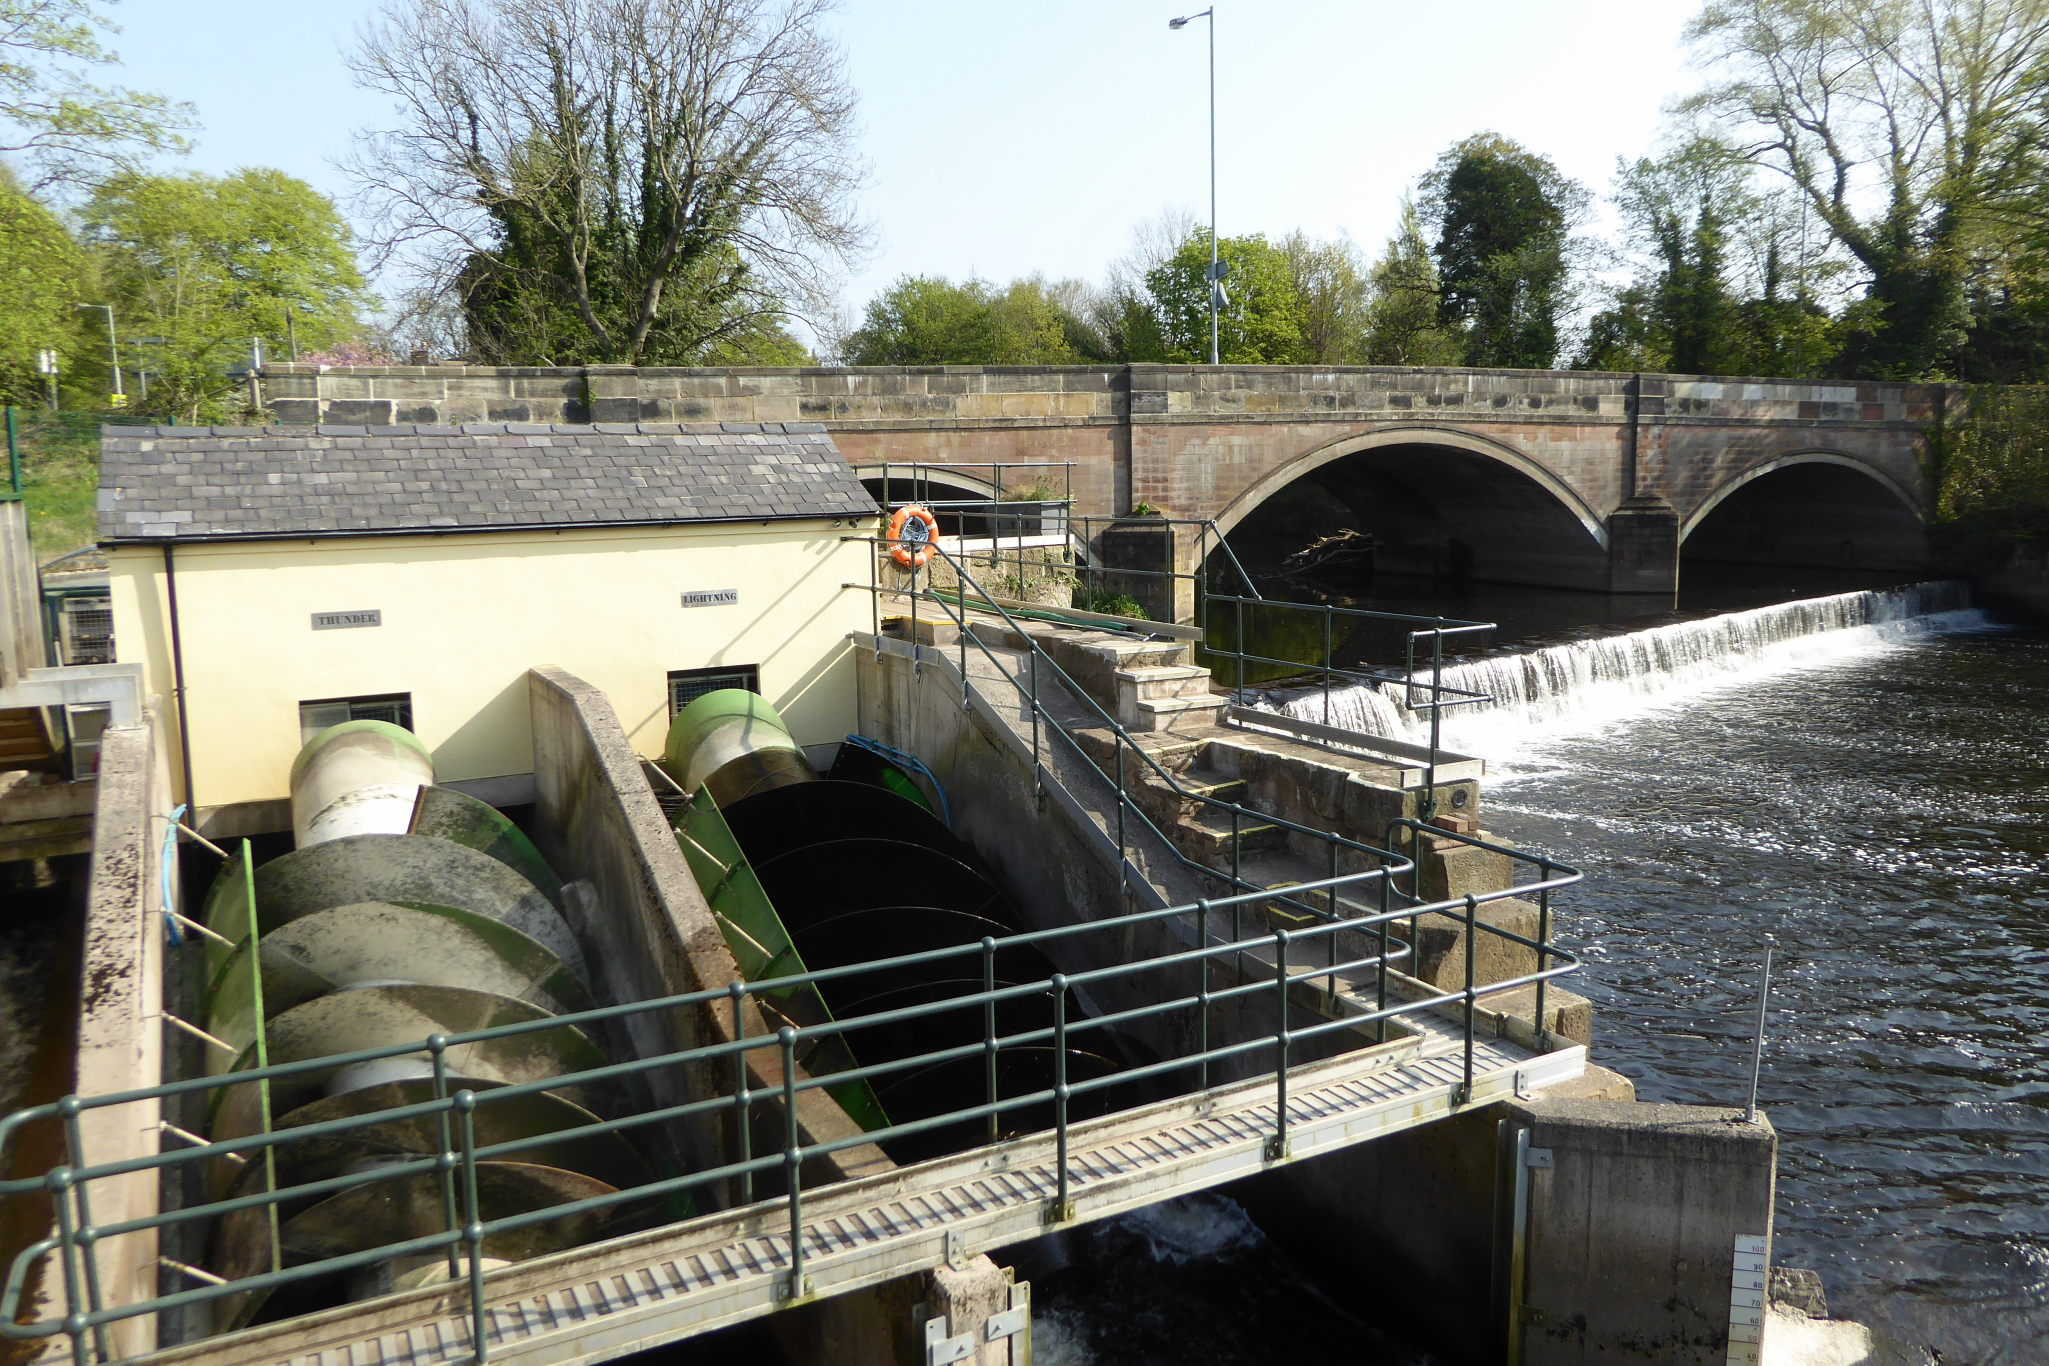 Stockport Hydro's hydroelectric turbines